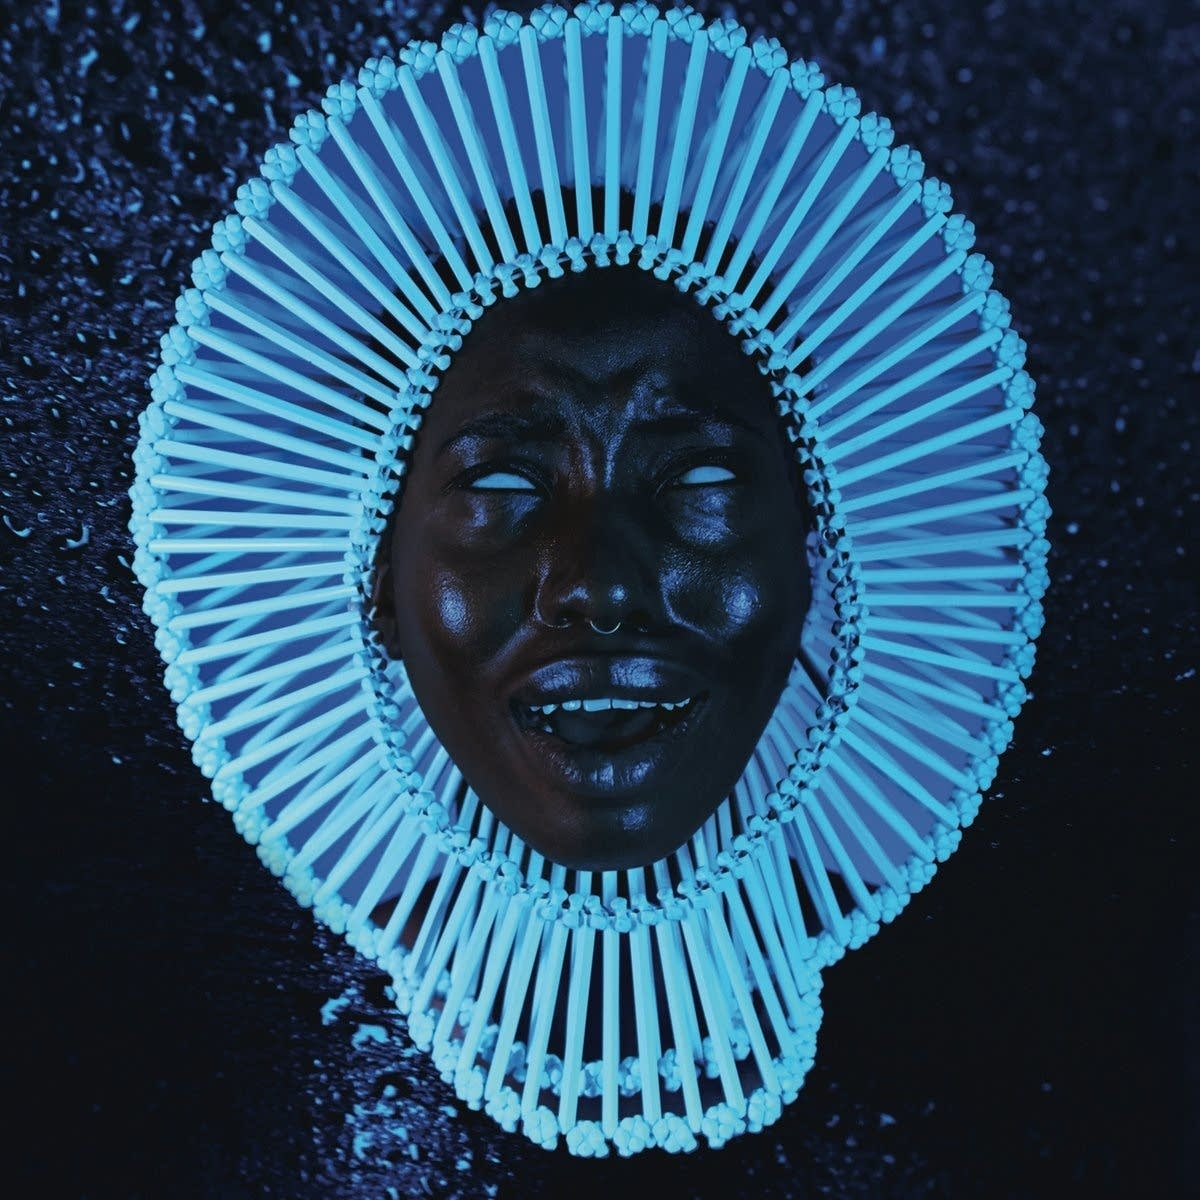 Childish Gambino, 'Awaken, My Love!'